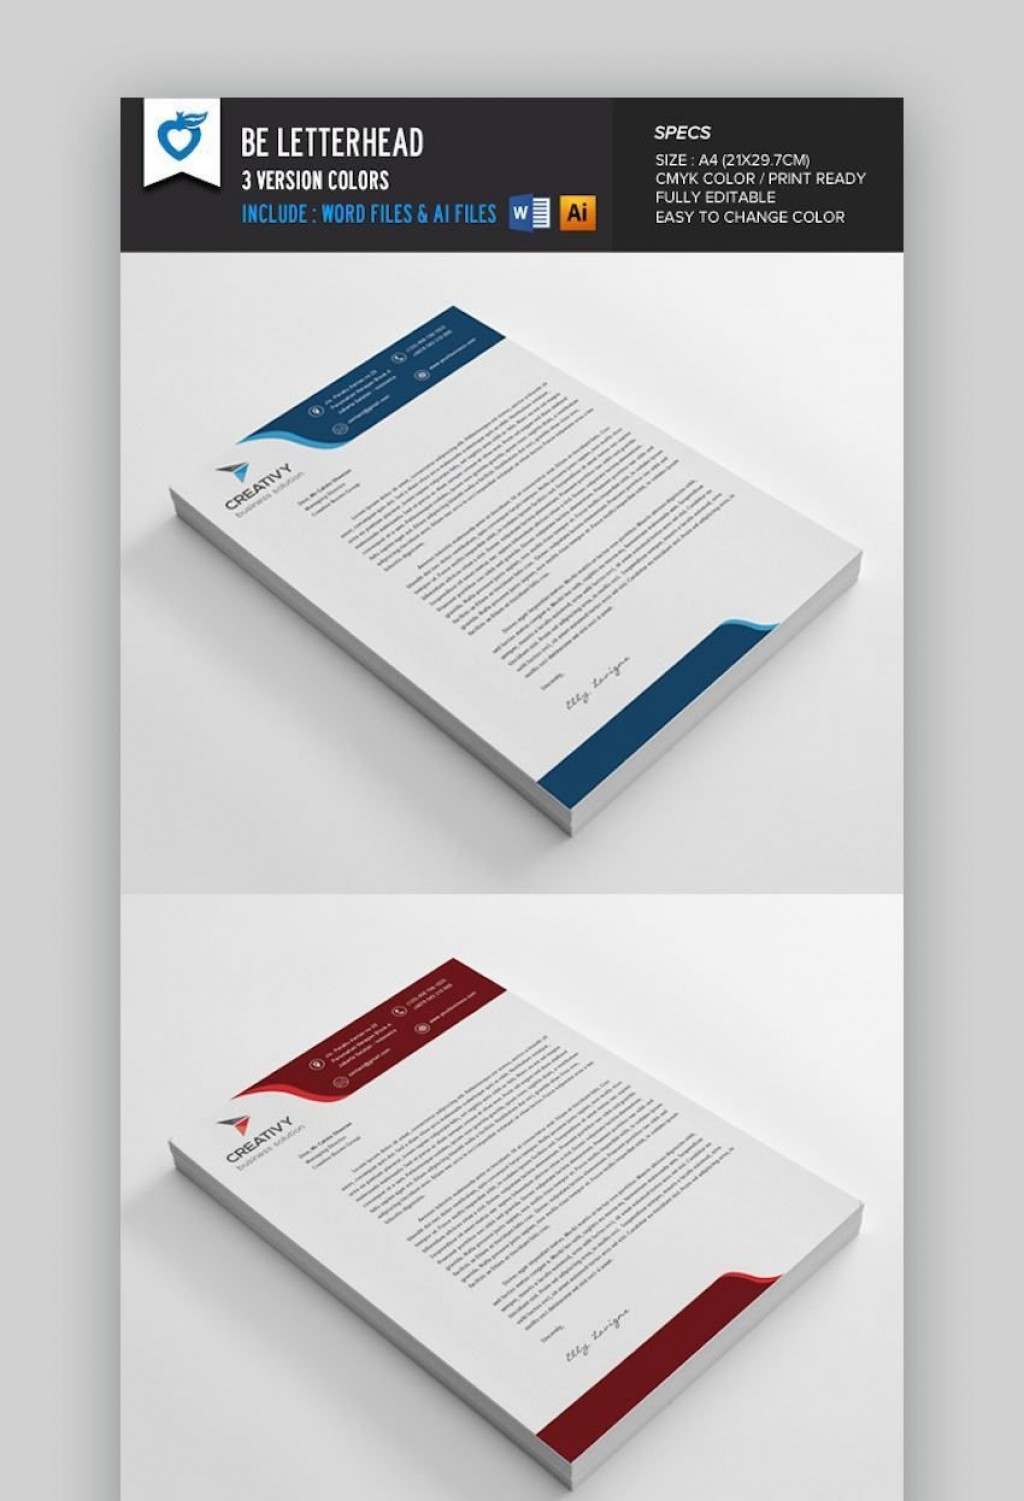 006 Staggering Letterhead Template Free Download Doc Image  Doctor CompanyLarge